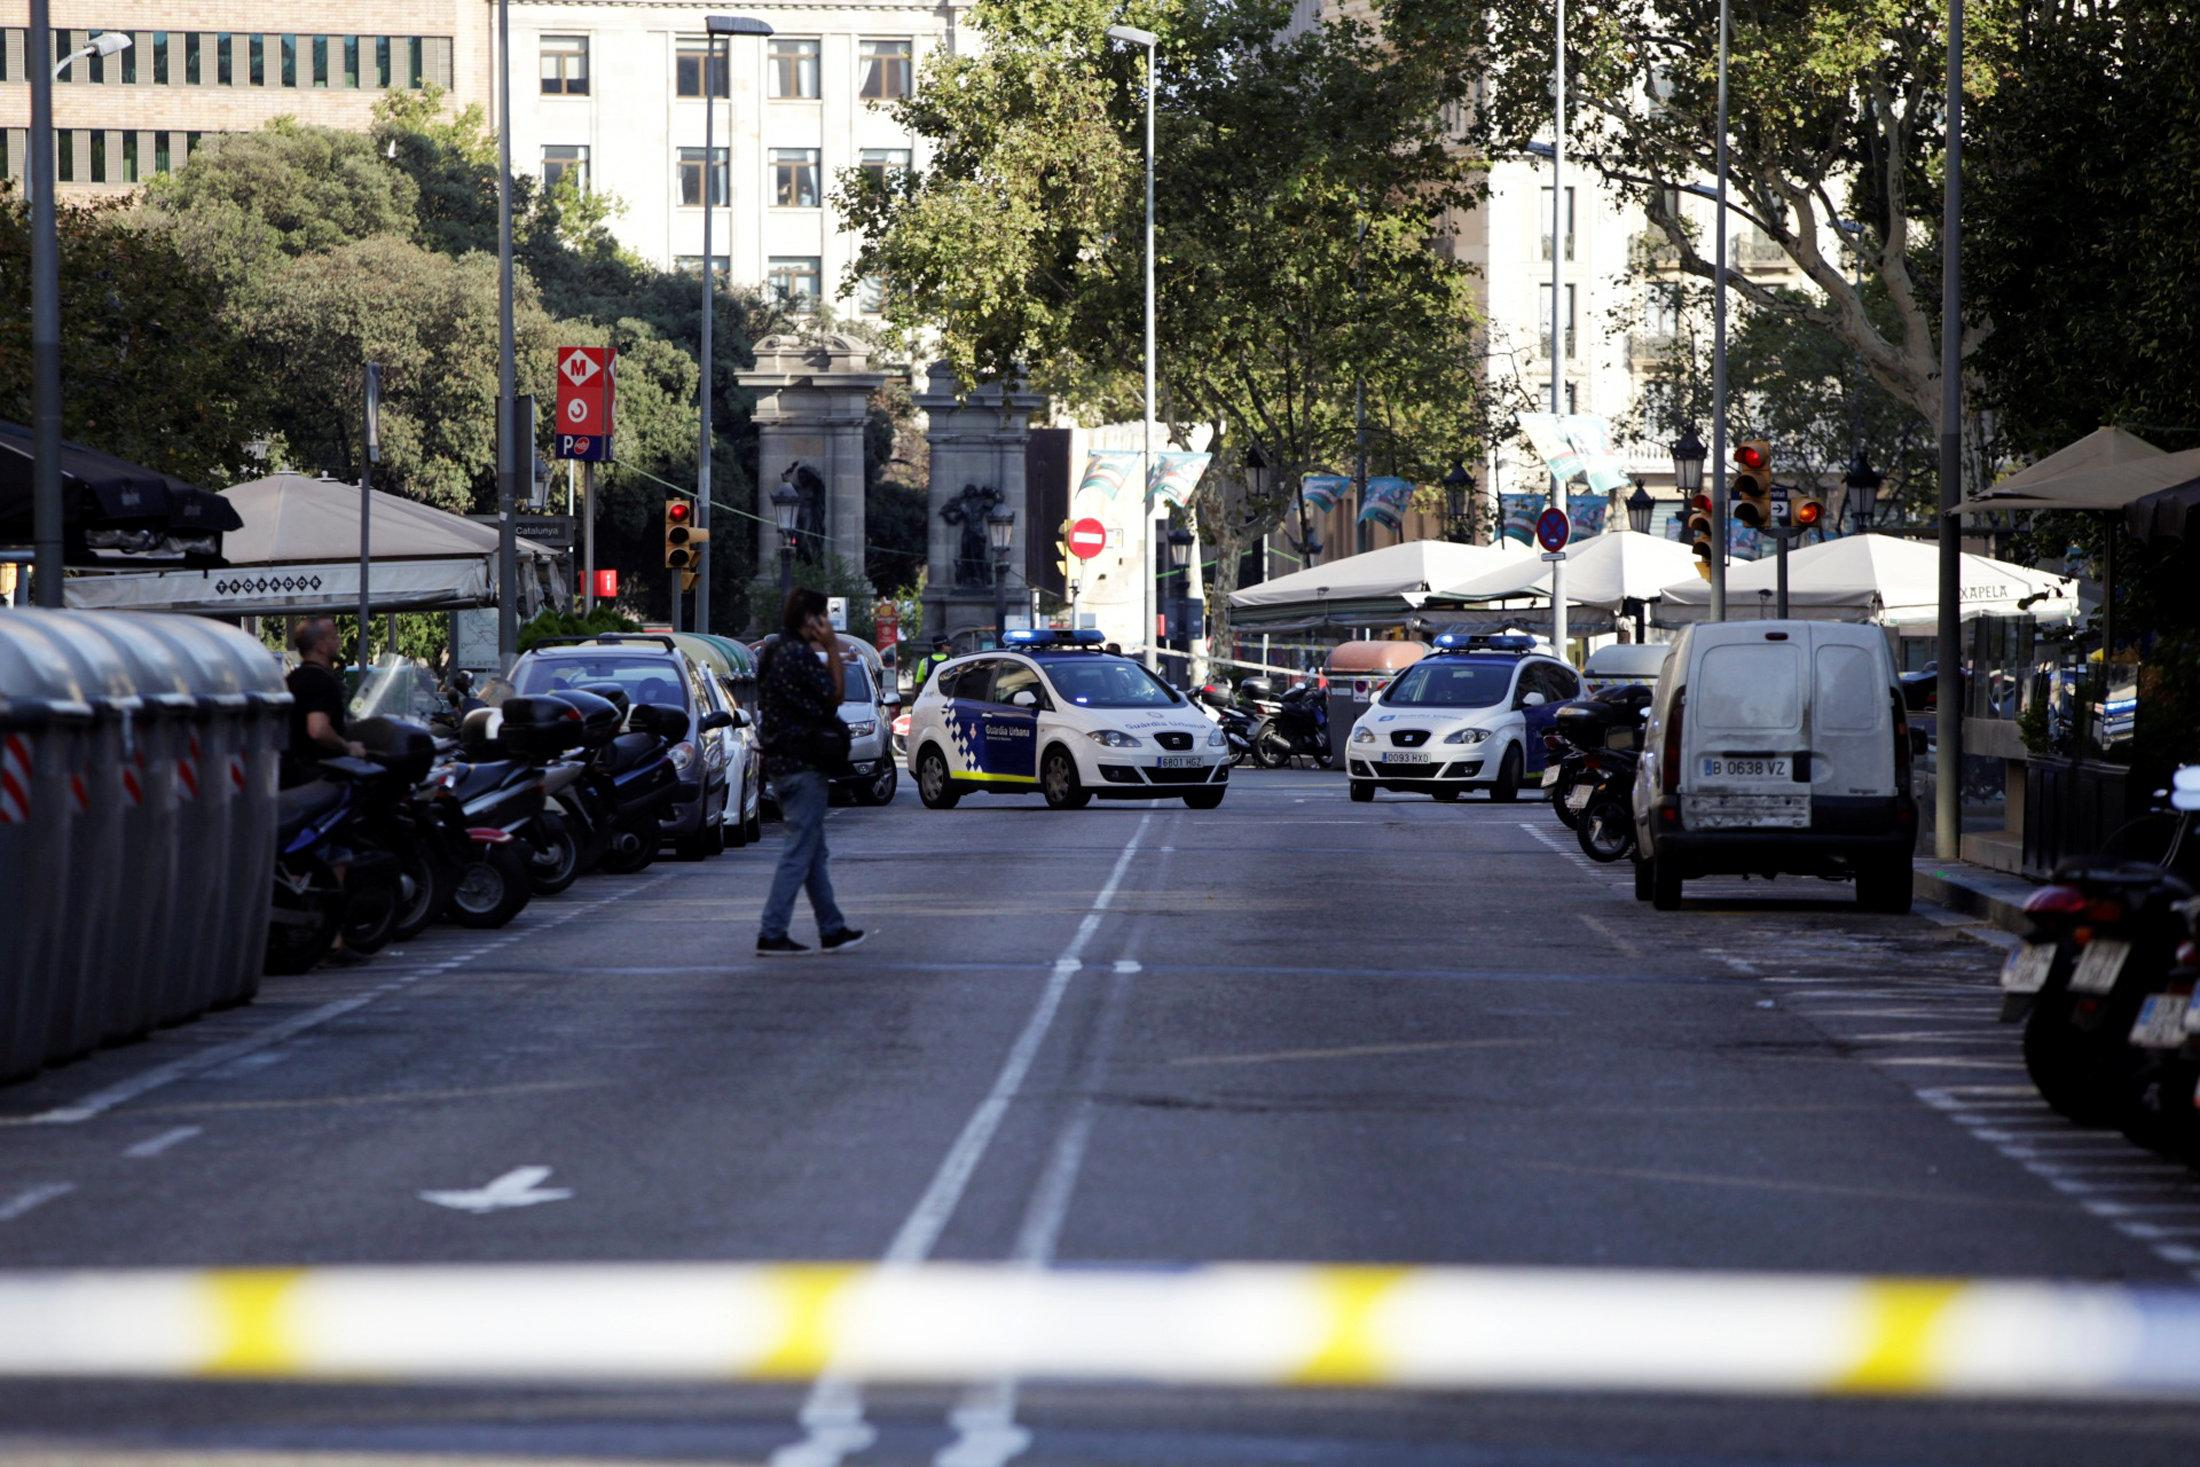 Two people arrested, 80 injured after Barcelona van attack: Catalan head